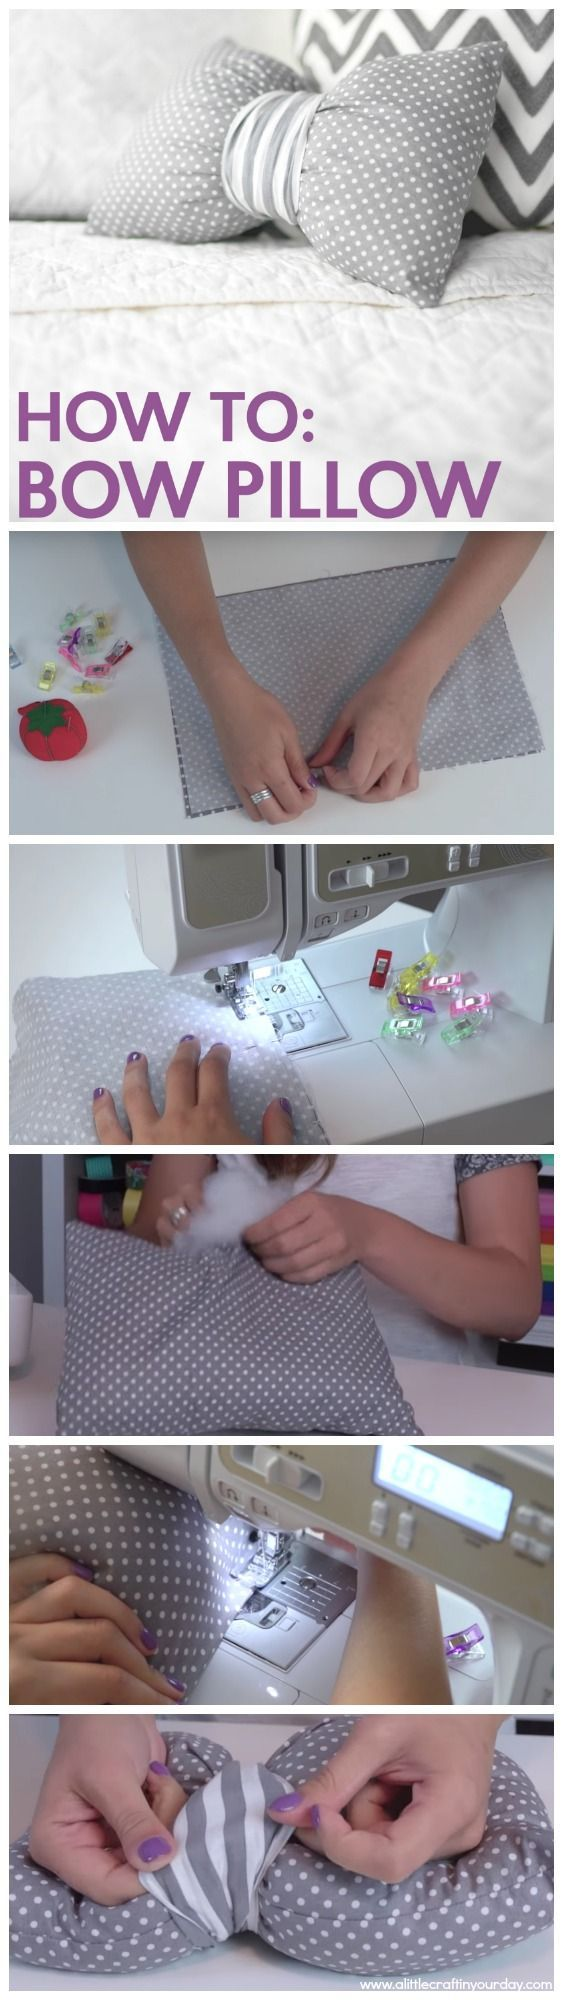 How to Sew a DIY Bow Pillow                                                                                                                                                                                 More